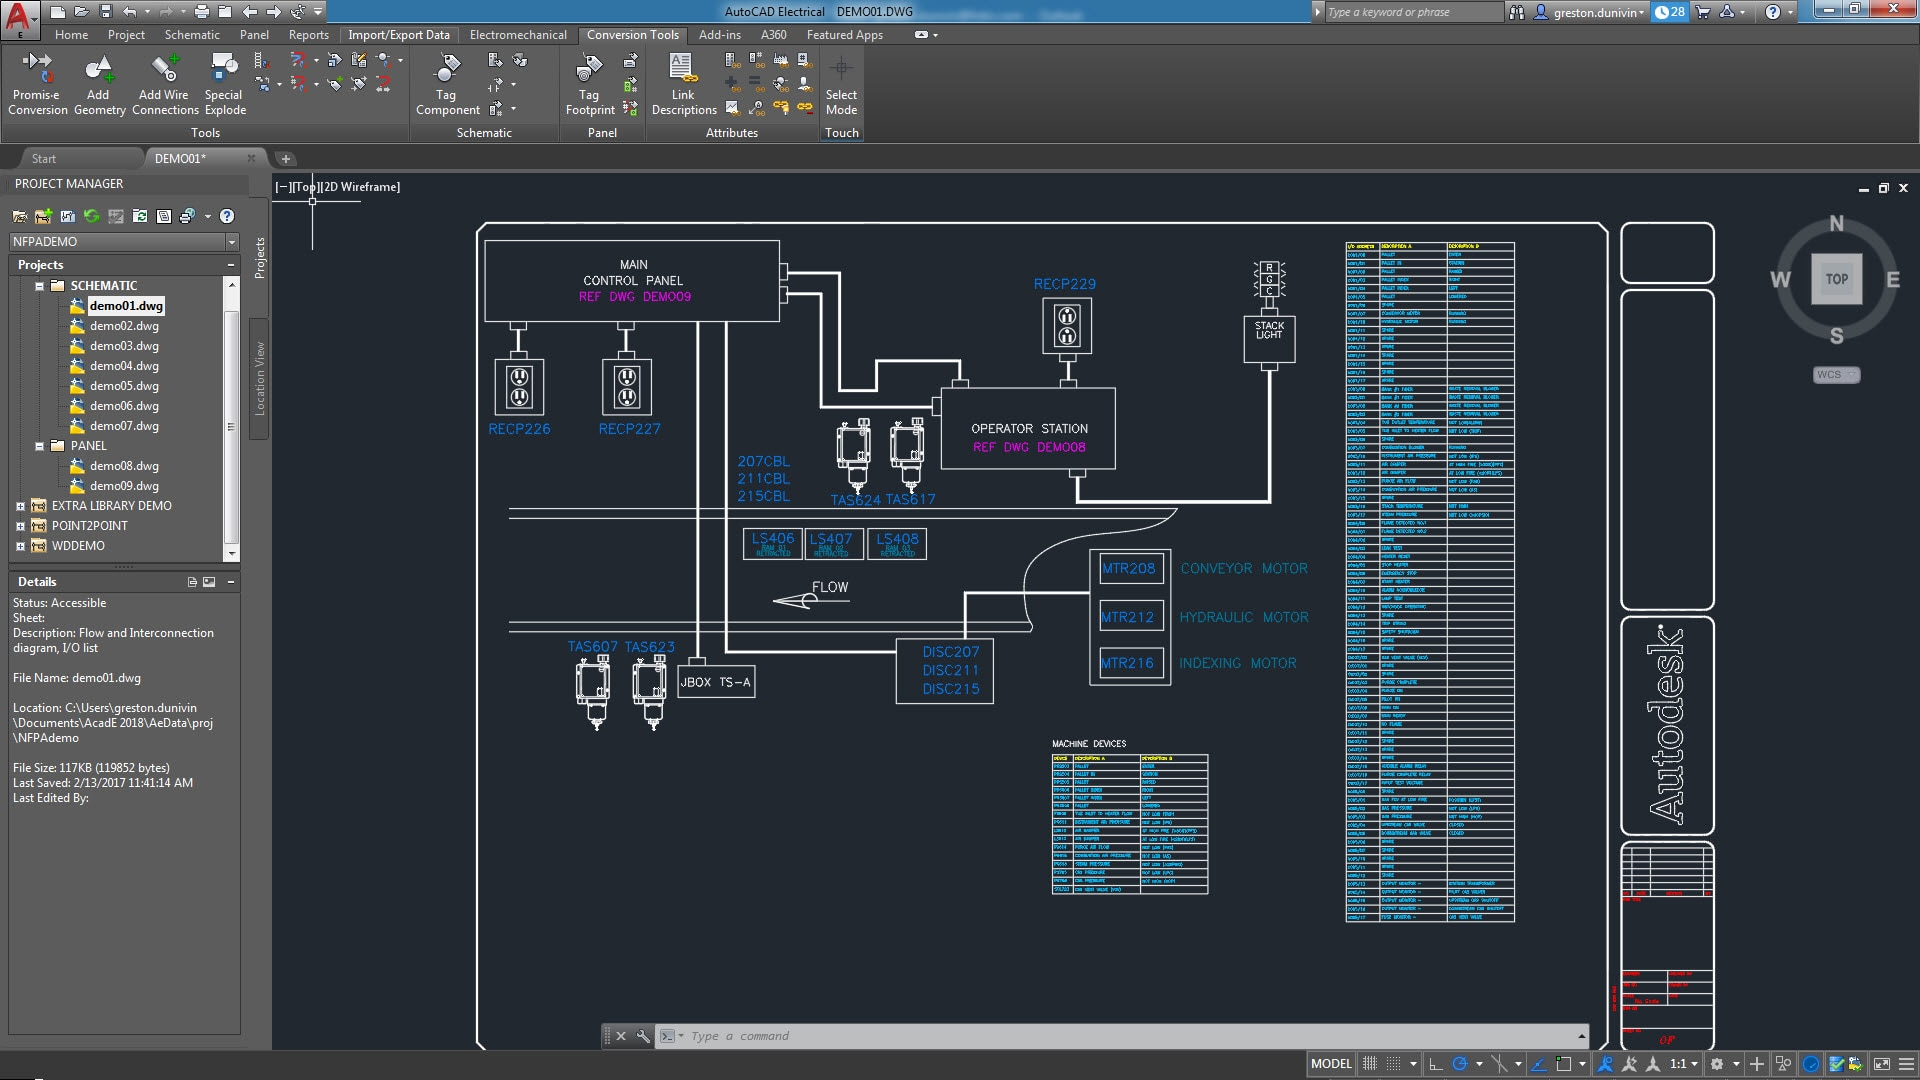 Autocad Electrical Toolset Design Software Free Wiring Diagram Simulator The Enables Customer And Supplier Collaboration